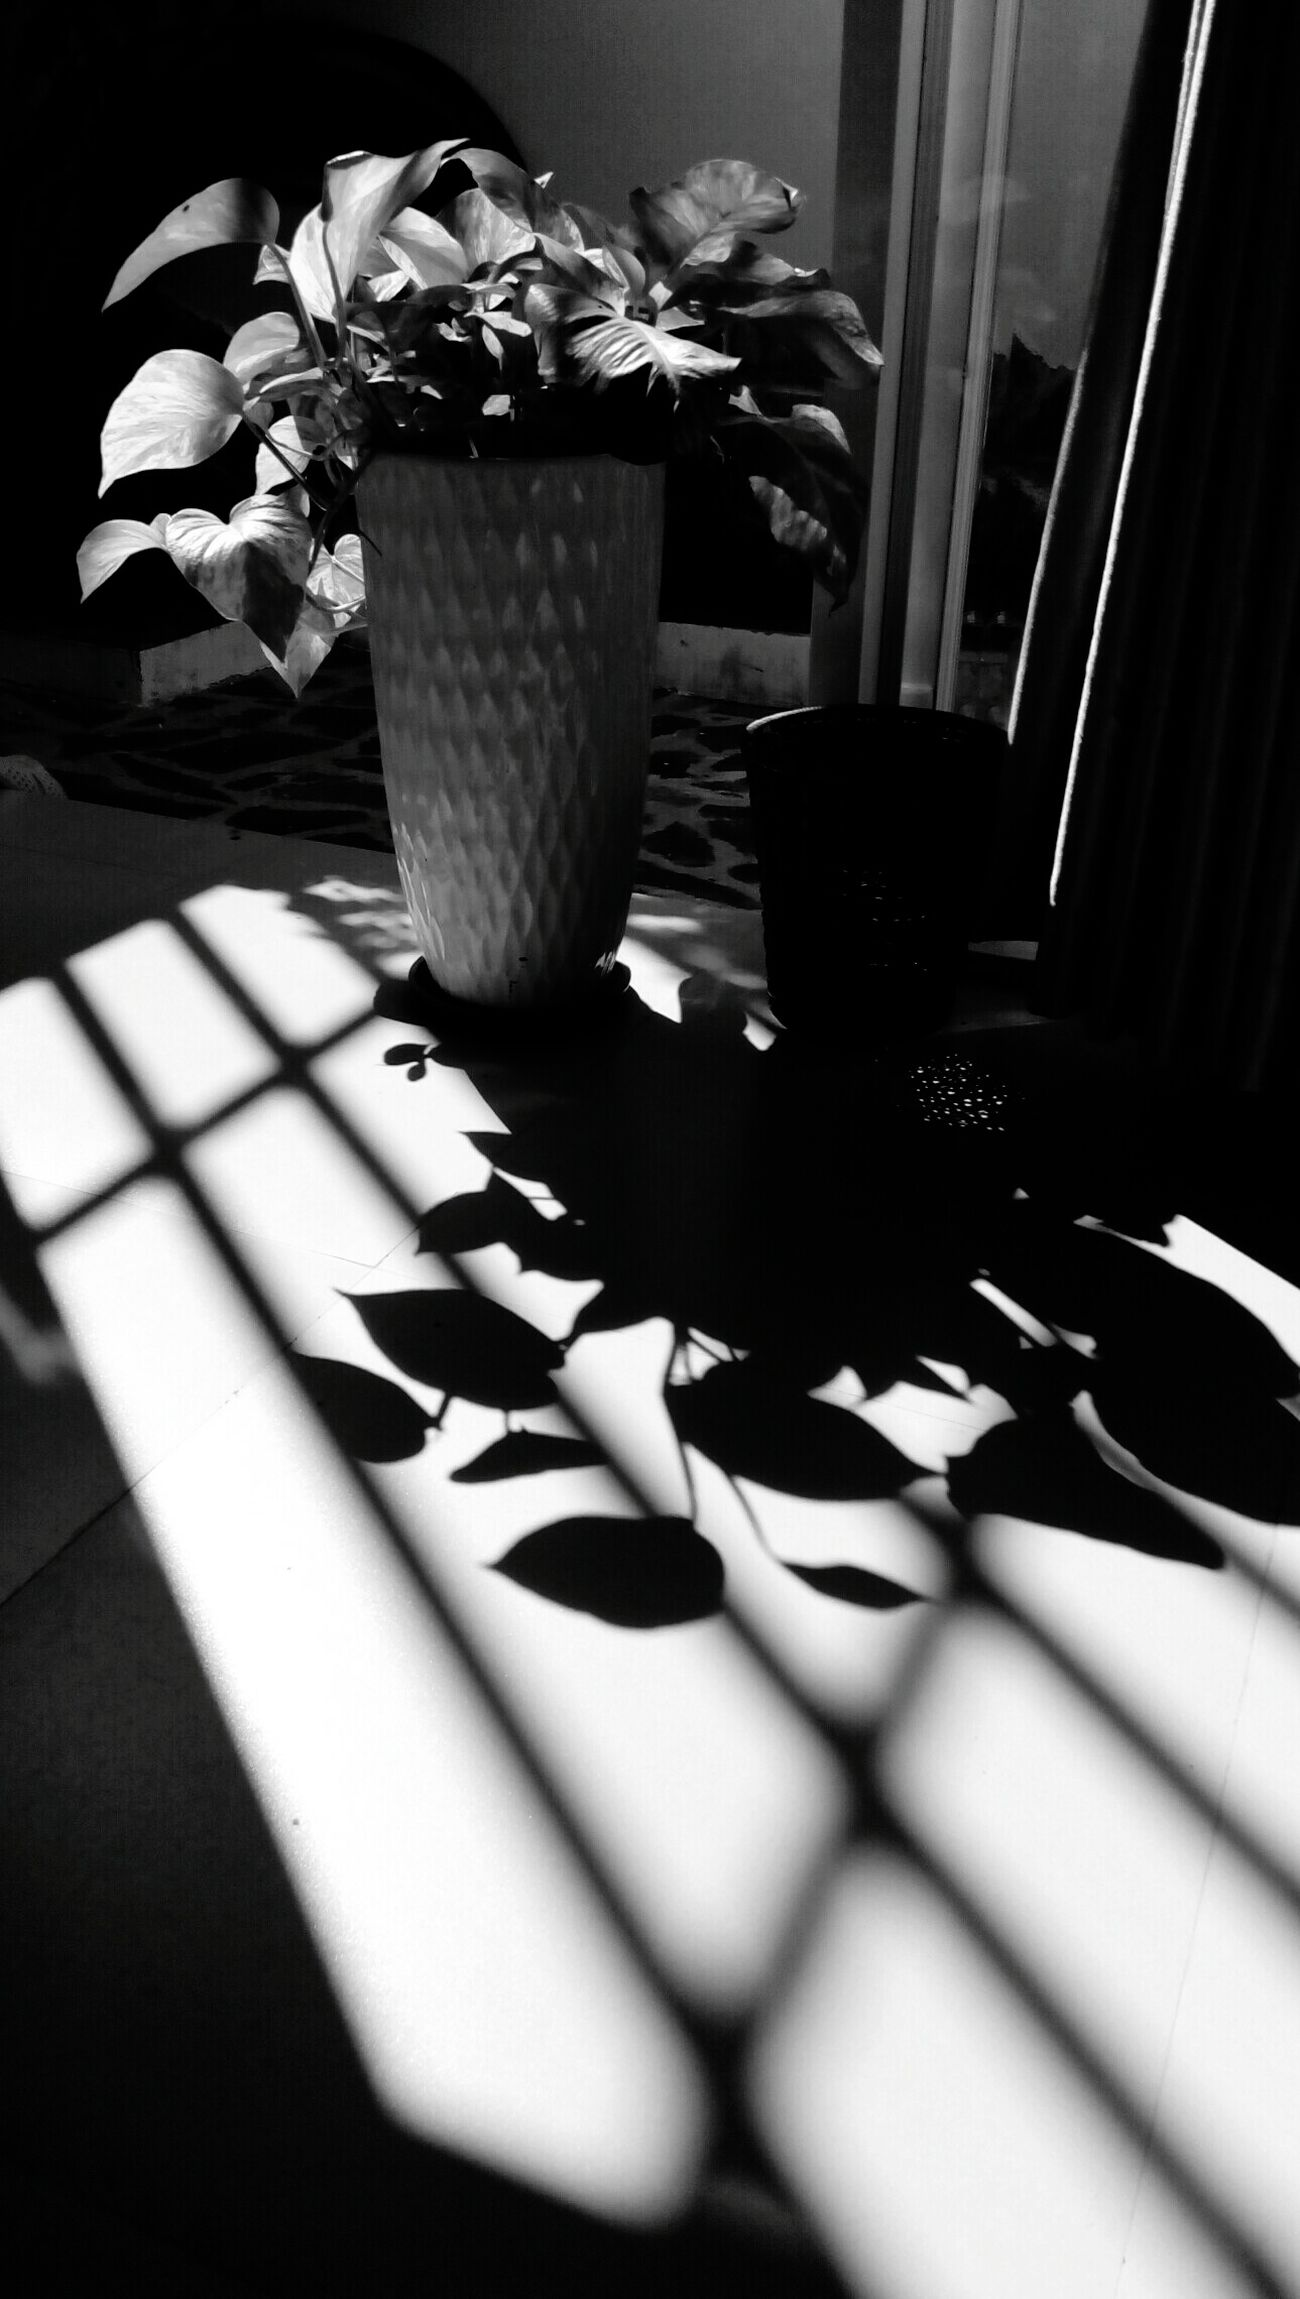 Shadow Sunlight Indoors  Plant And Light Shadow Plant B&w Photo B&W Collective B&W Street Photography Balck&white